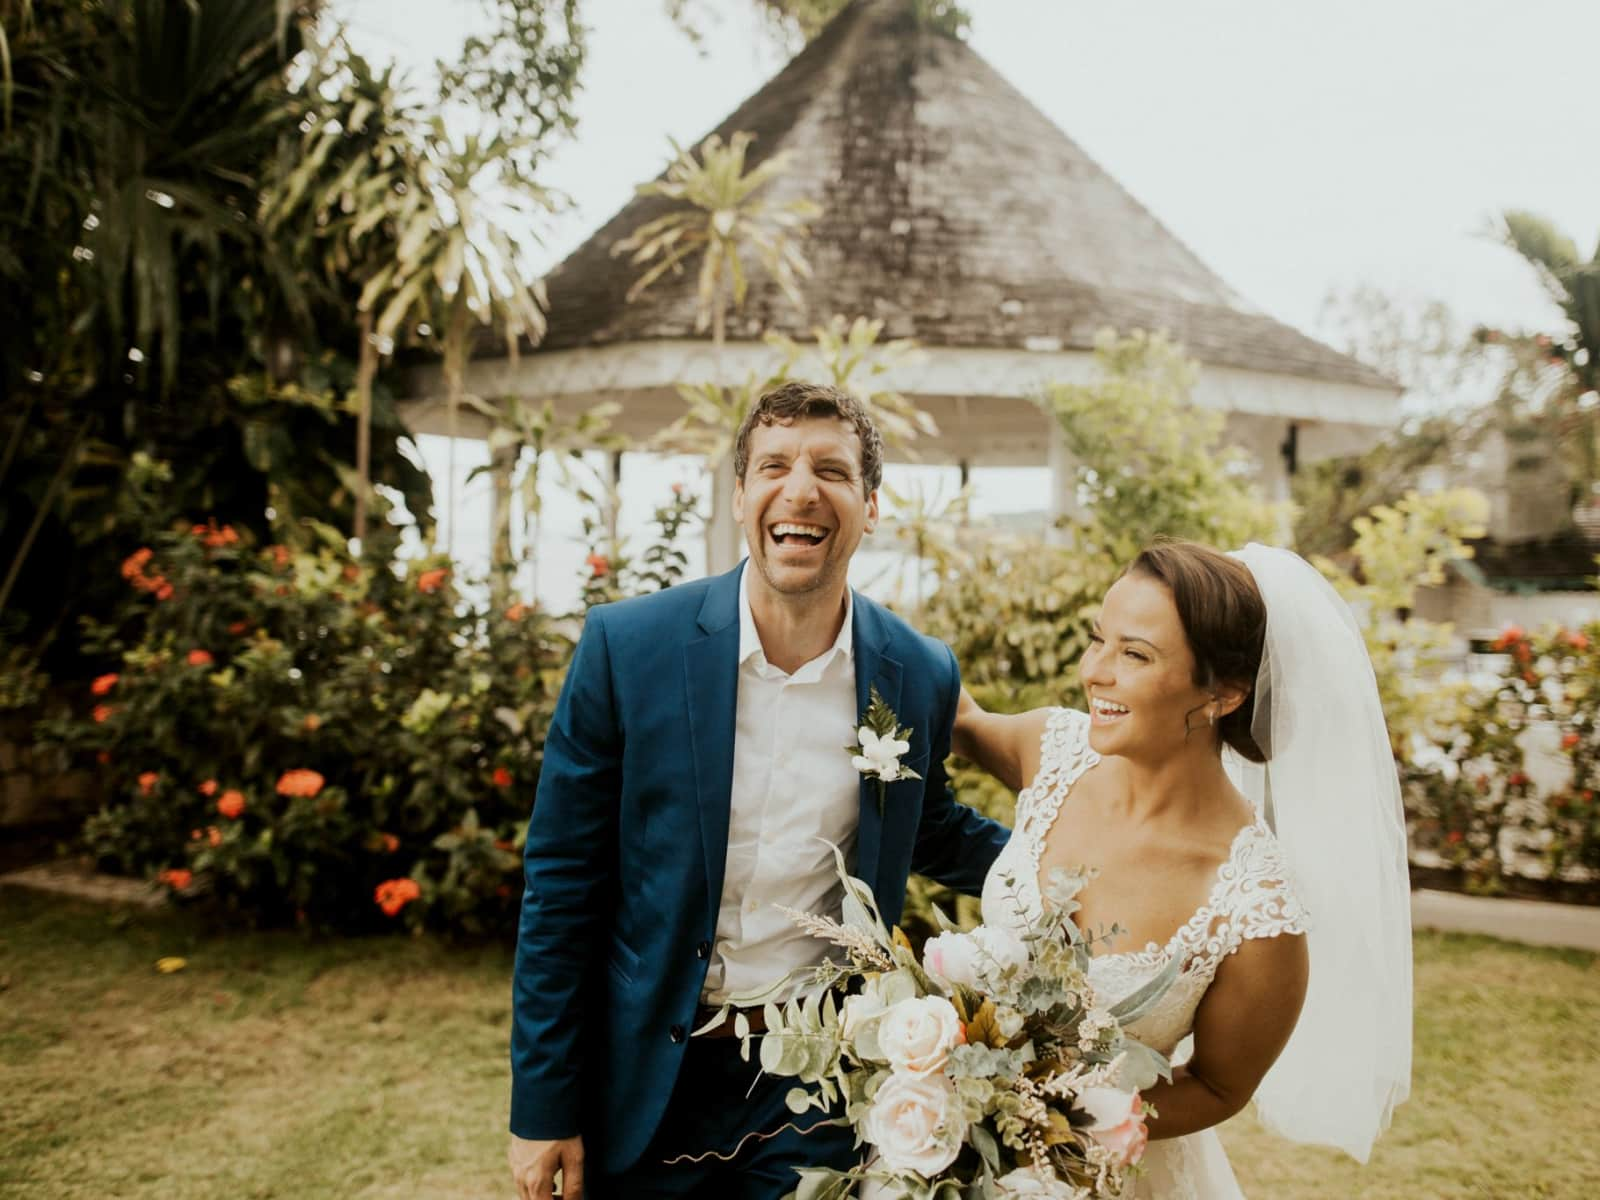 Annaliese & Kyle from Greenville, South Carolina, United States